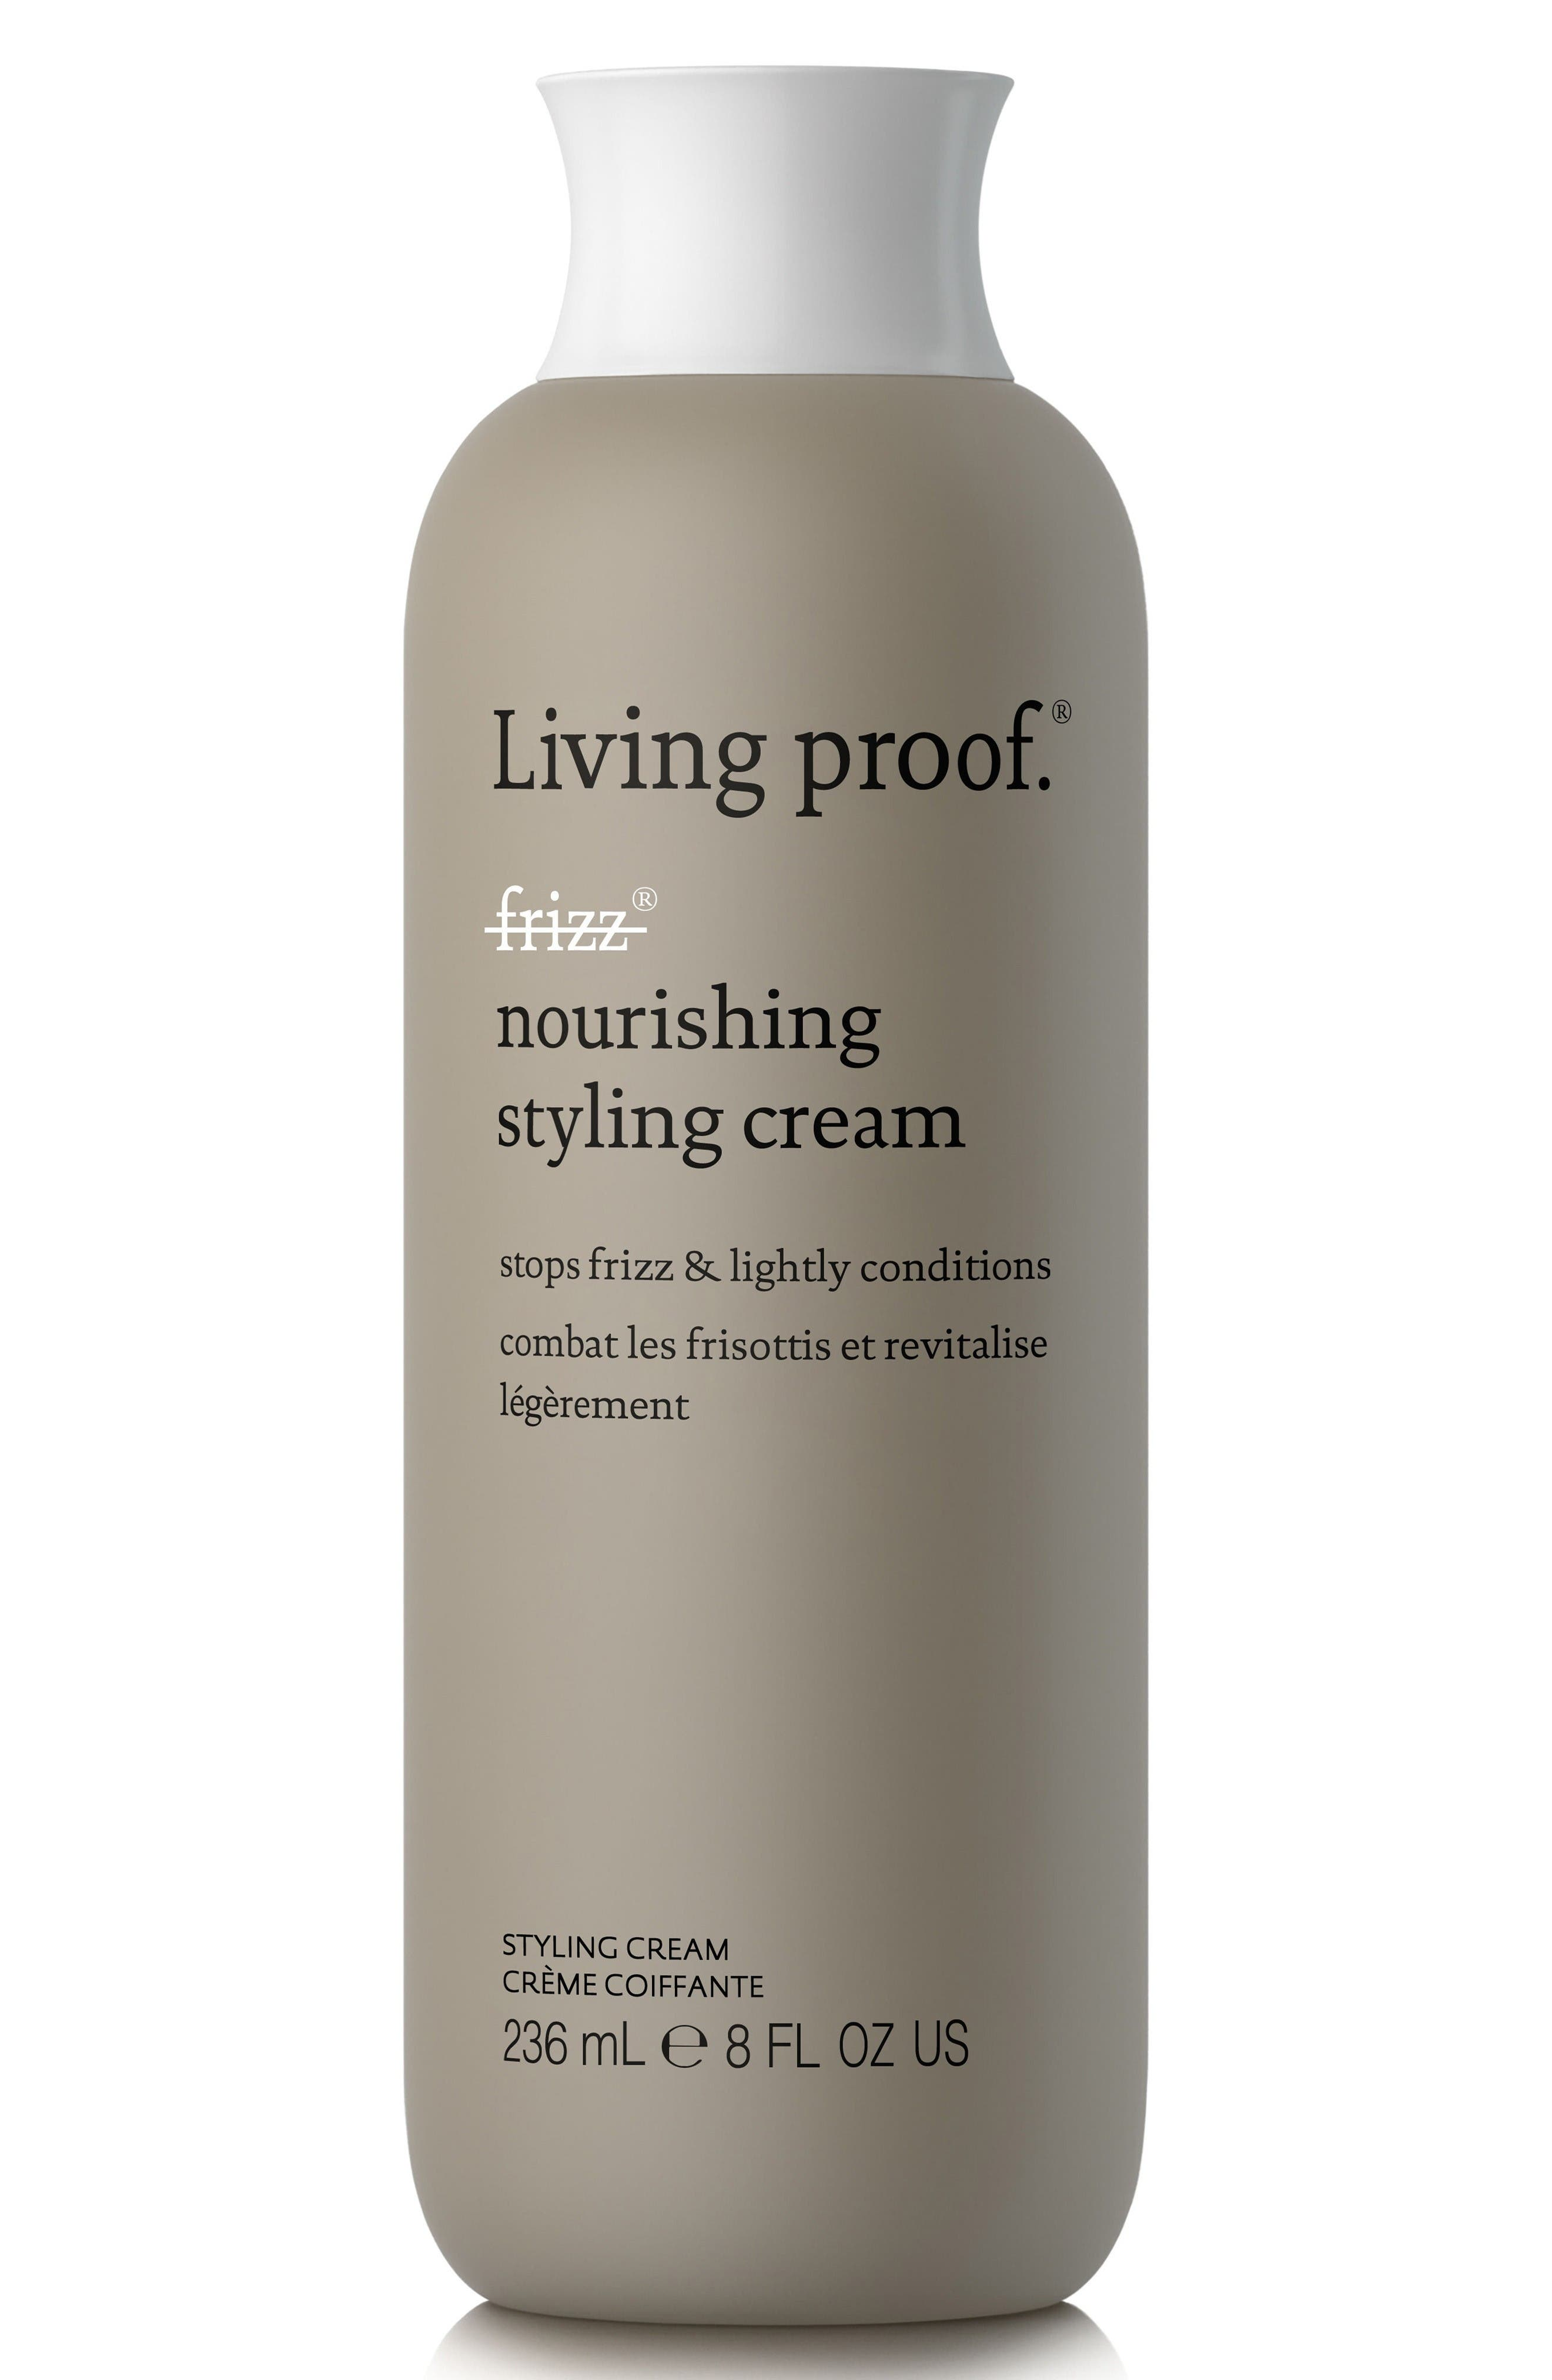 Alternate Image 1 Selected - Living proof® No Frizz Nourishing Styling Cream